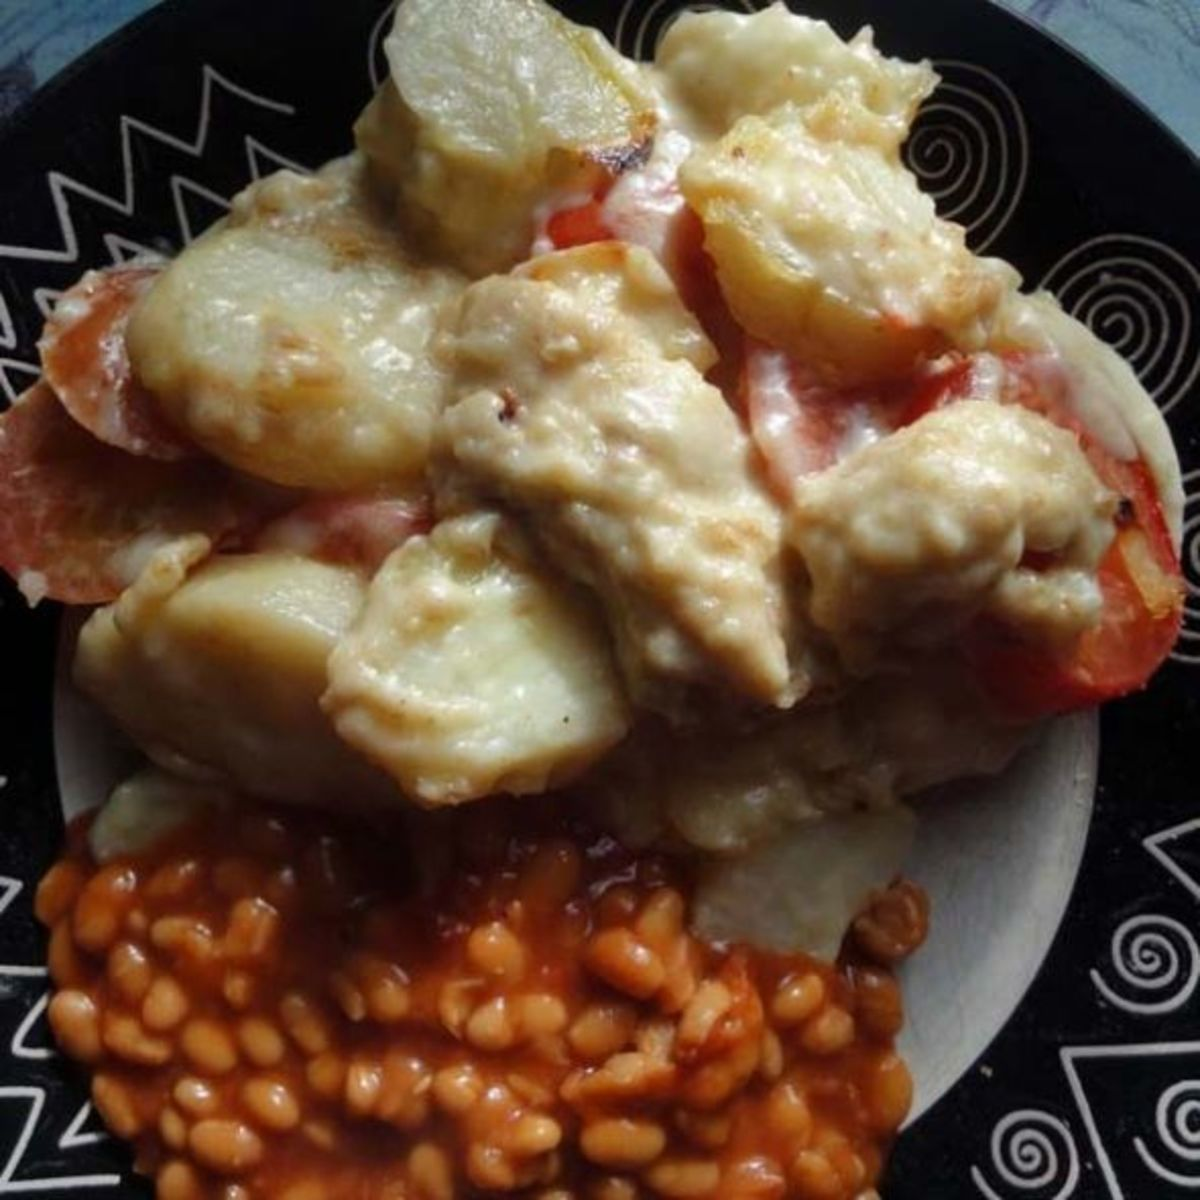 Served with baked beans